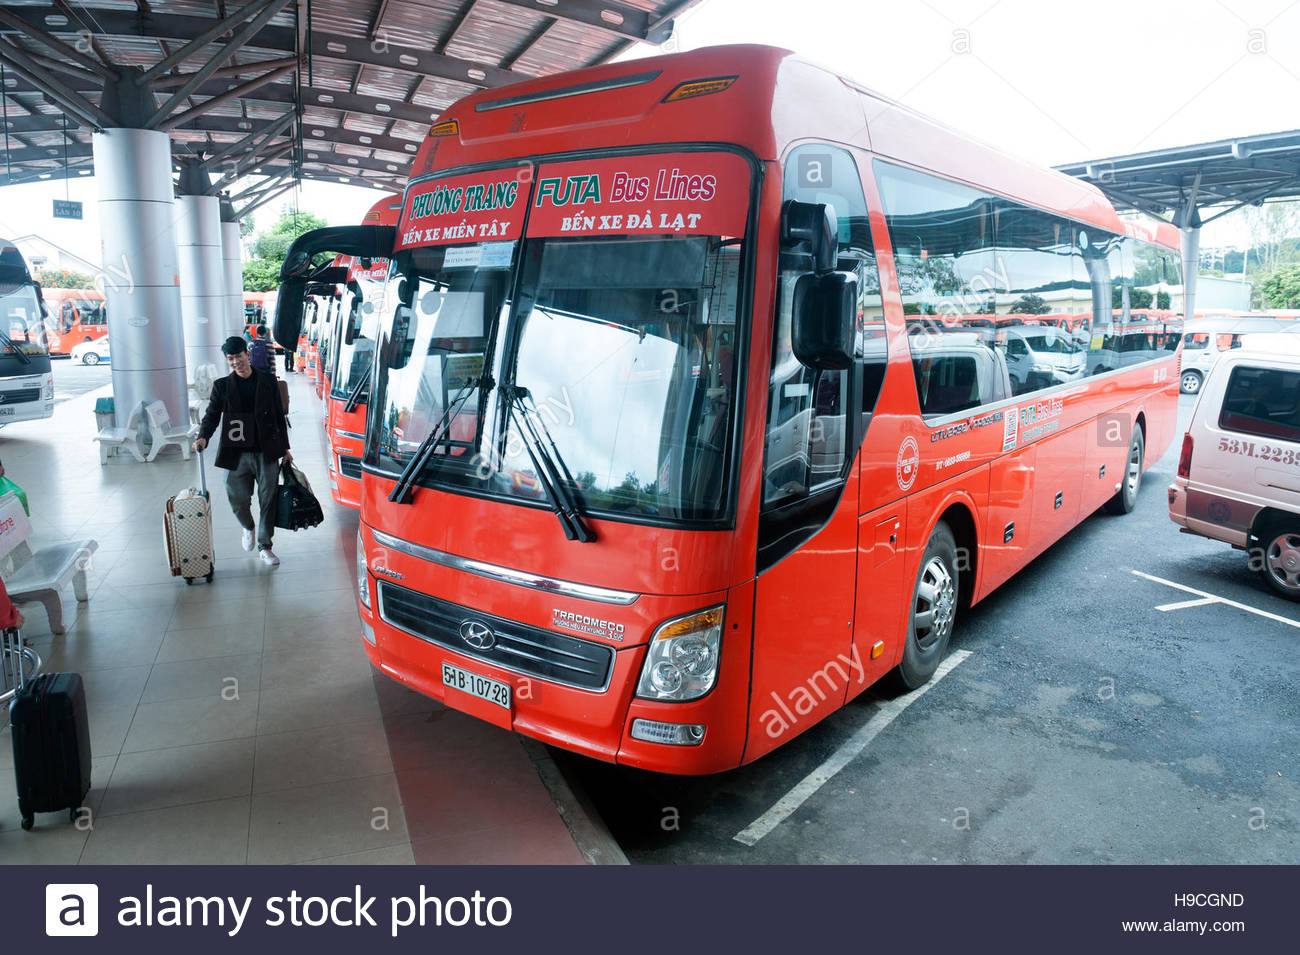 Futa Pictures for dalat vietnam phuong trang futa bus lines at the intercity bus